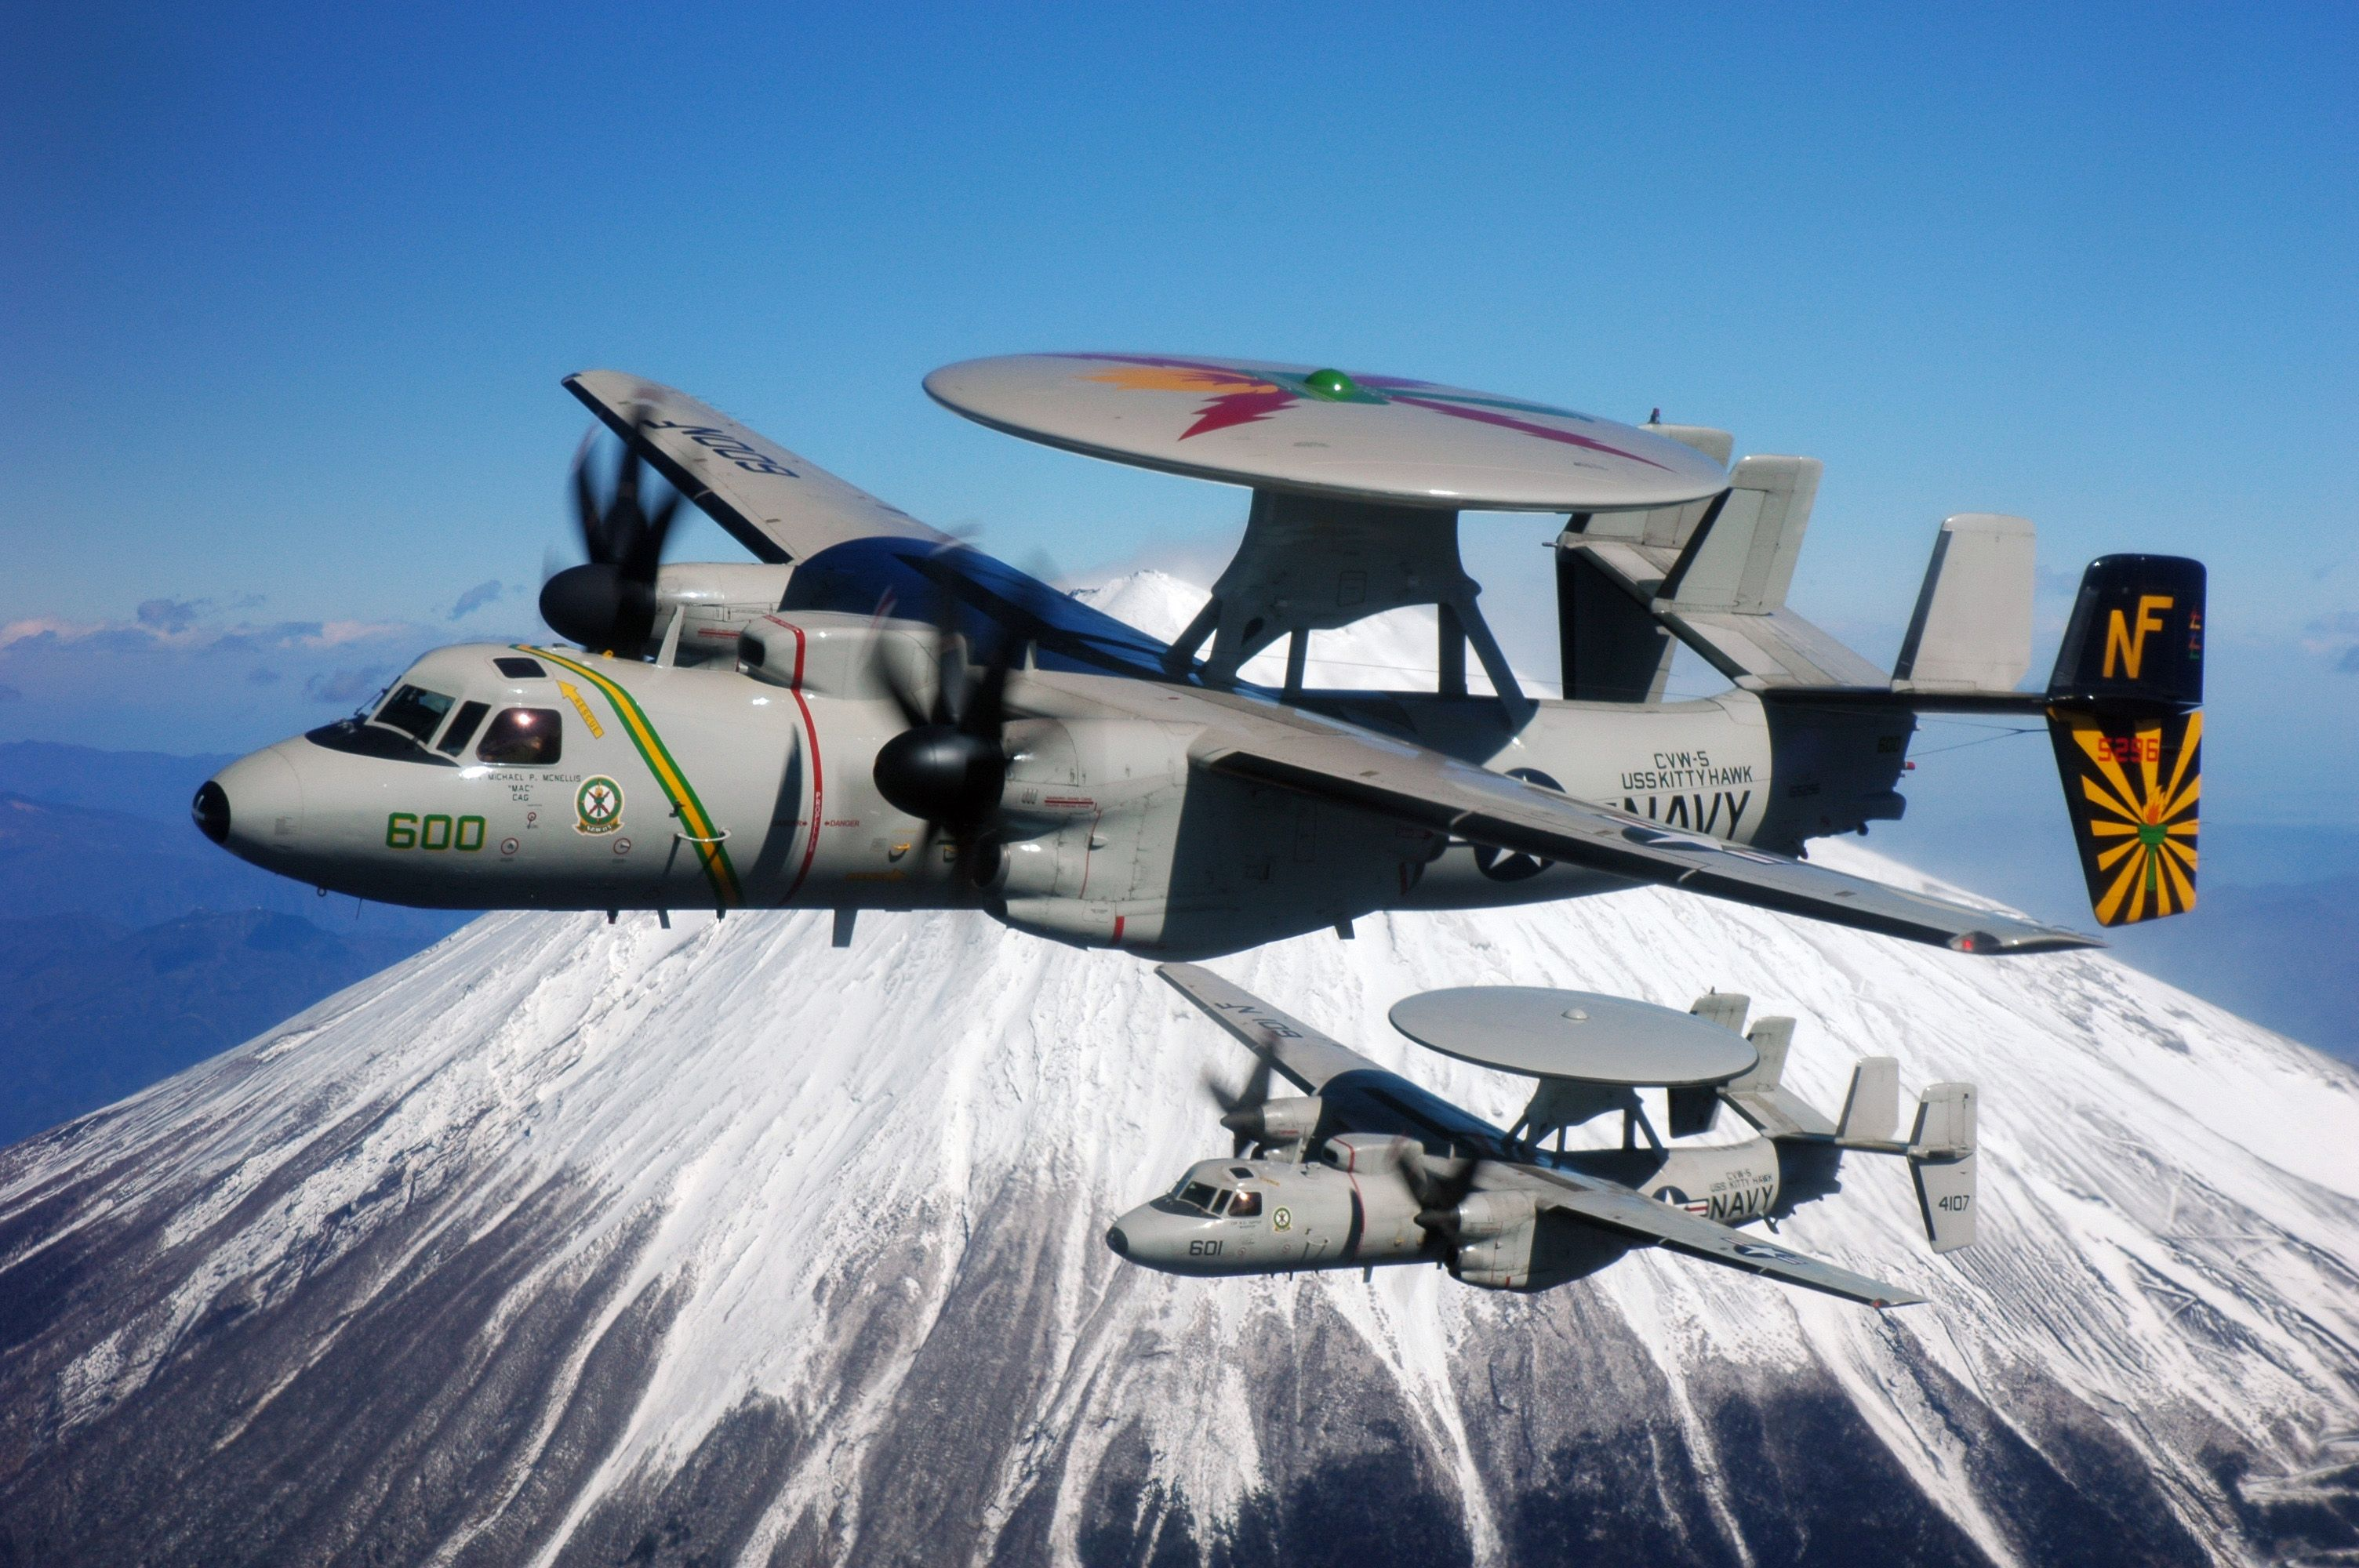 2 Us Navy E 2c Hawkeye Grumman Flying By Mount Fuji Japan The Grumman E 2 Hawkeye Is An American All Weather Aircraft Carrier Capable Tactical 軍用機 偵察 プロペラ機